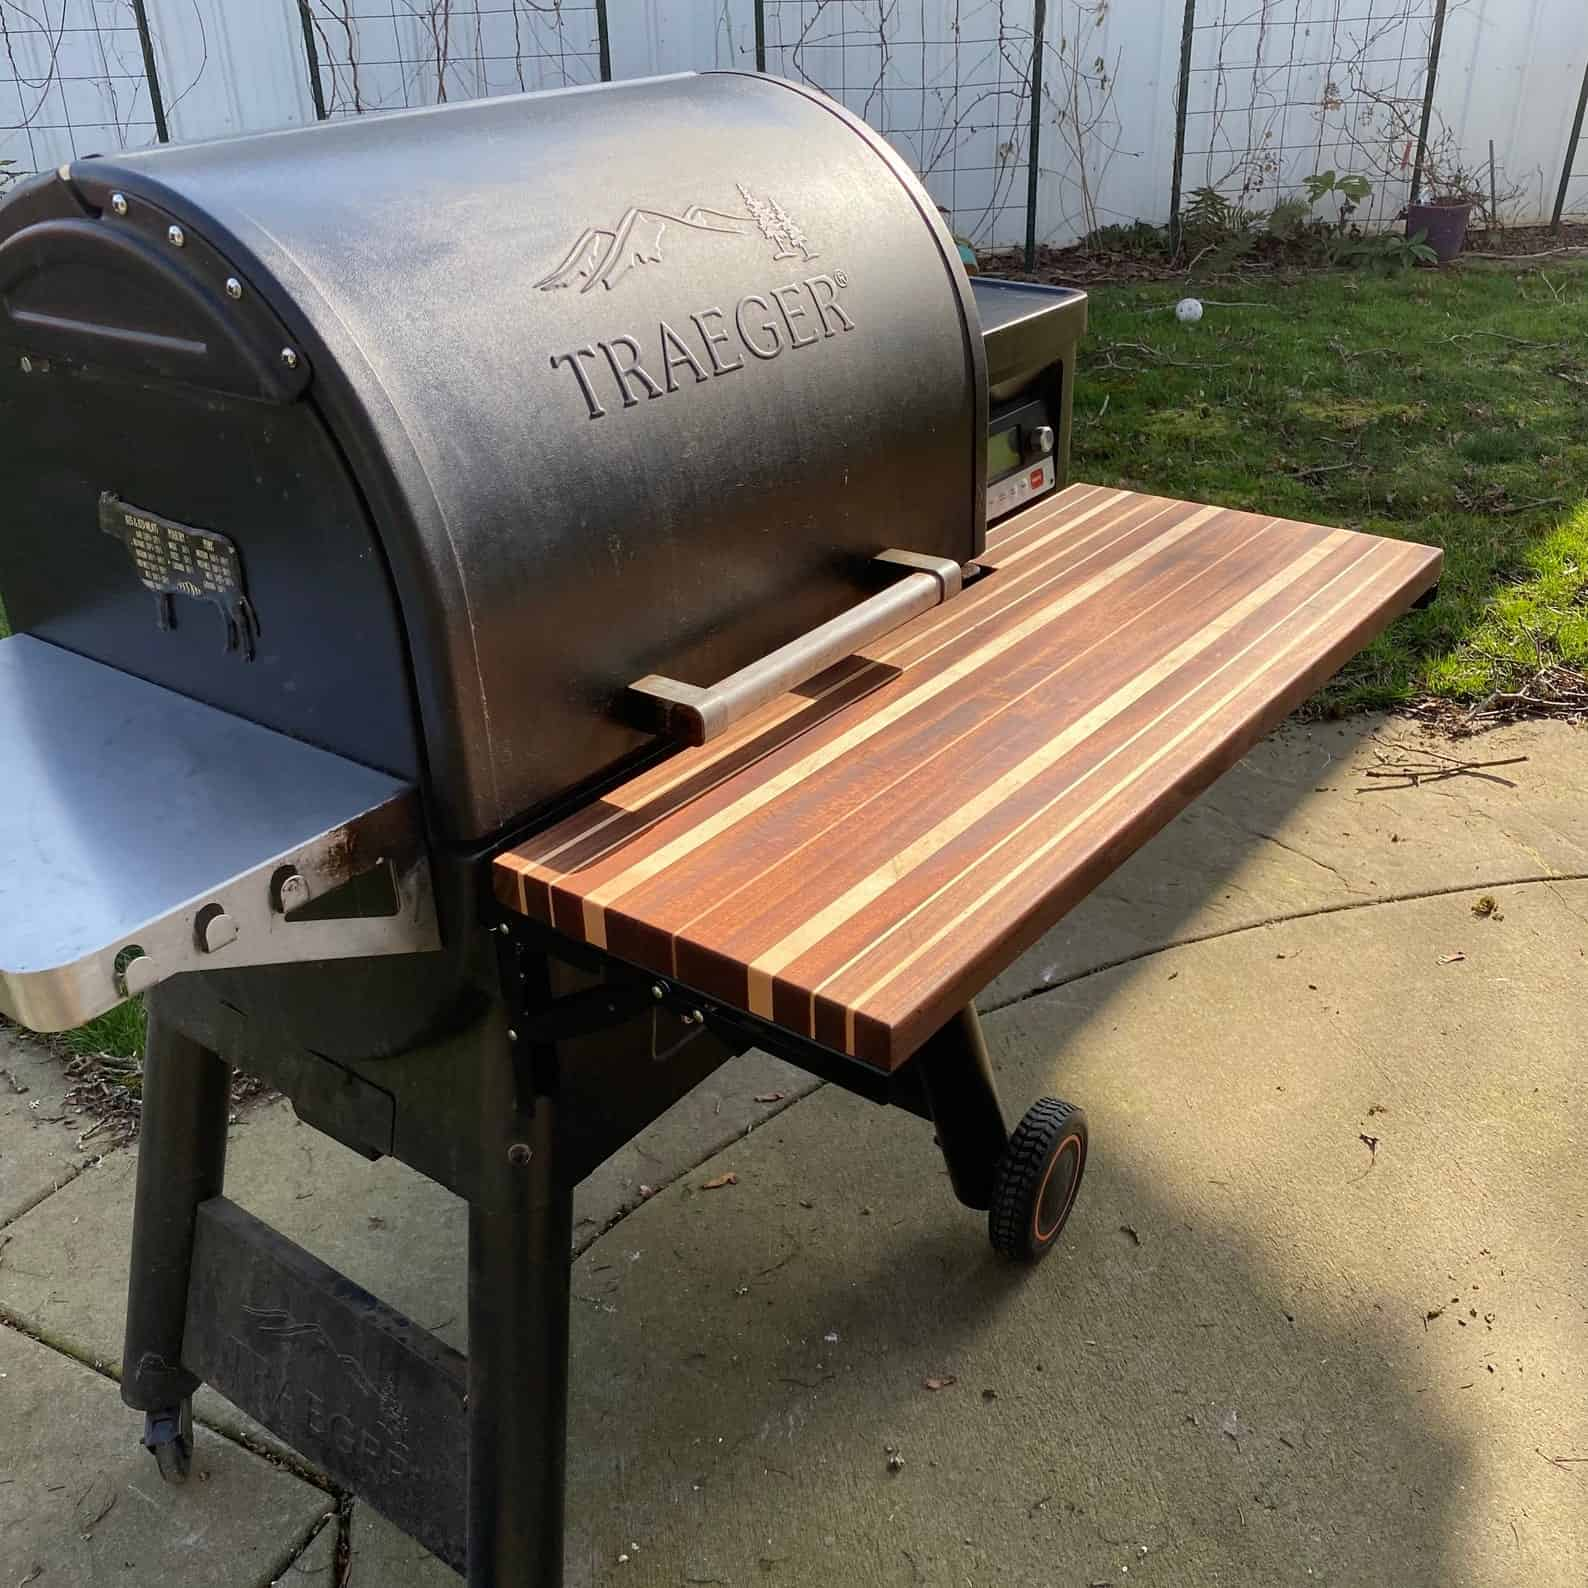 Traeger grill with custom front shelf made of wood